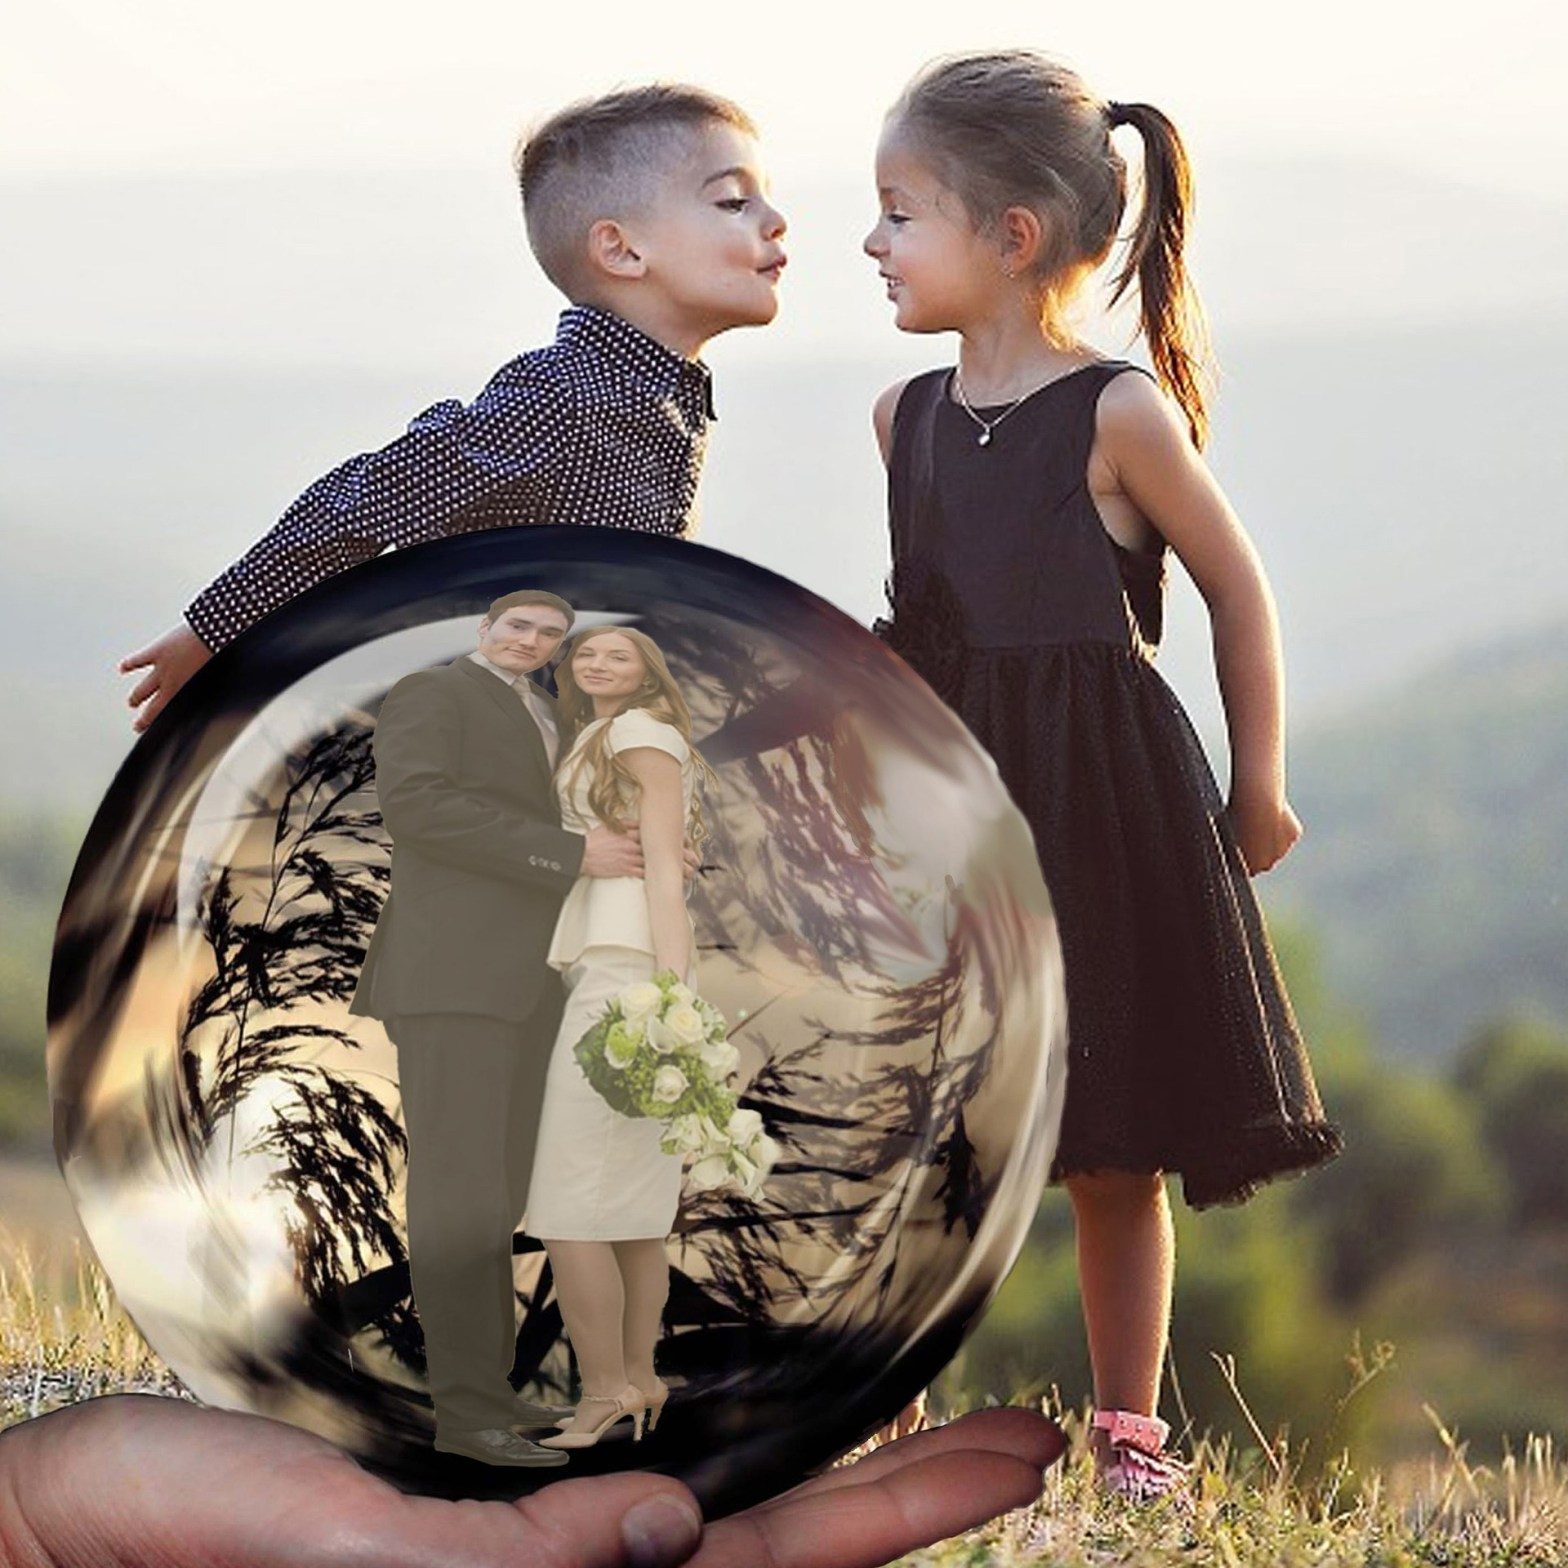 Children kissing and a crystal ball shows them as adults in a committed relationship